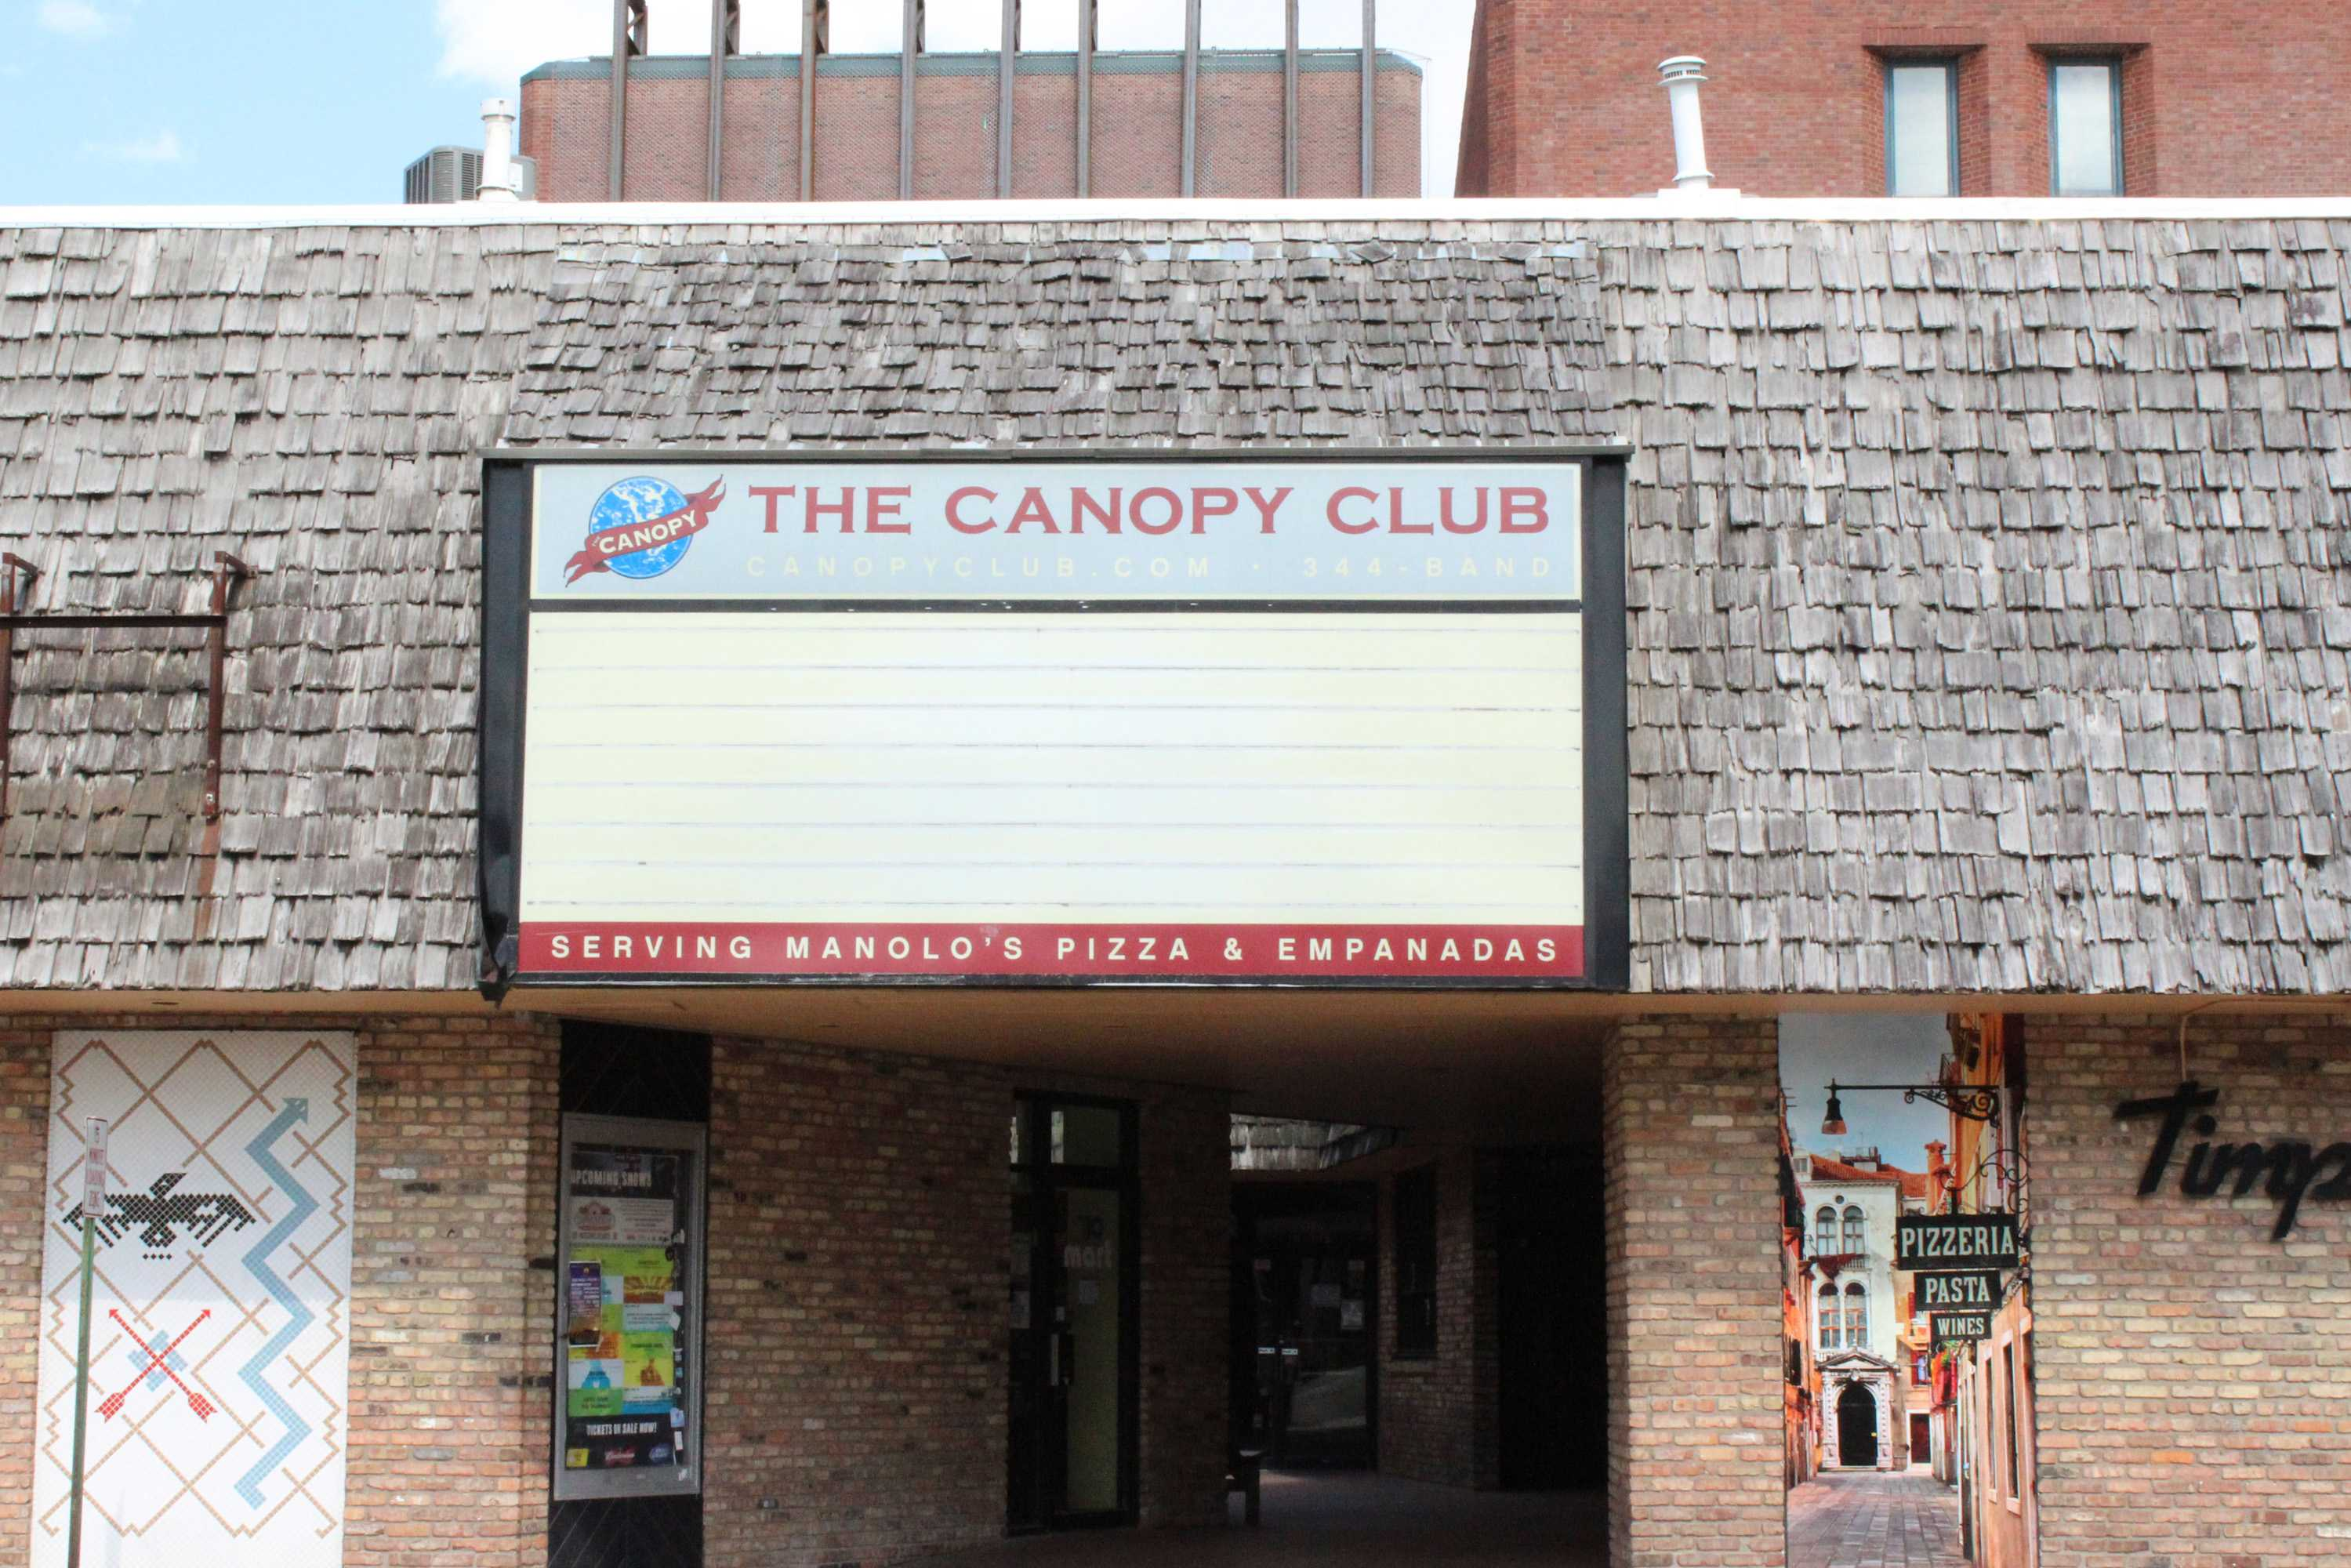 The sign in front of the Canopy Club located on Goodwin Ave. in the University of Illinois at Urbana- Champaign on Sunday, May 23, 2016.